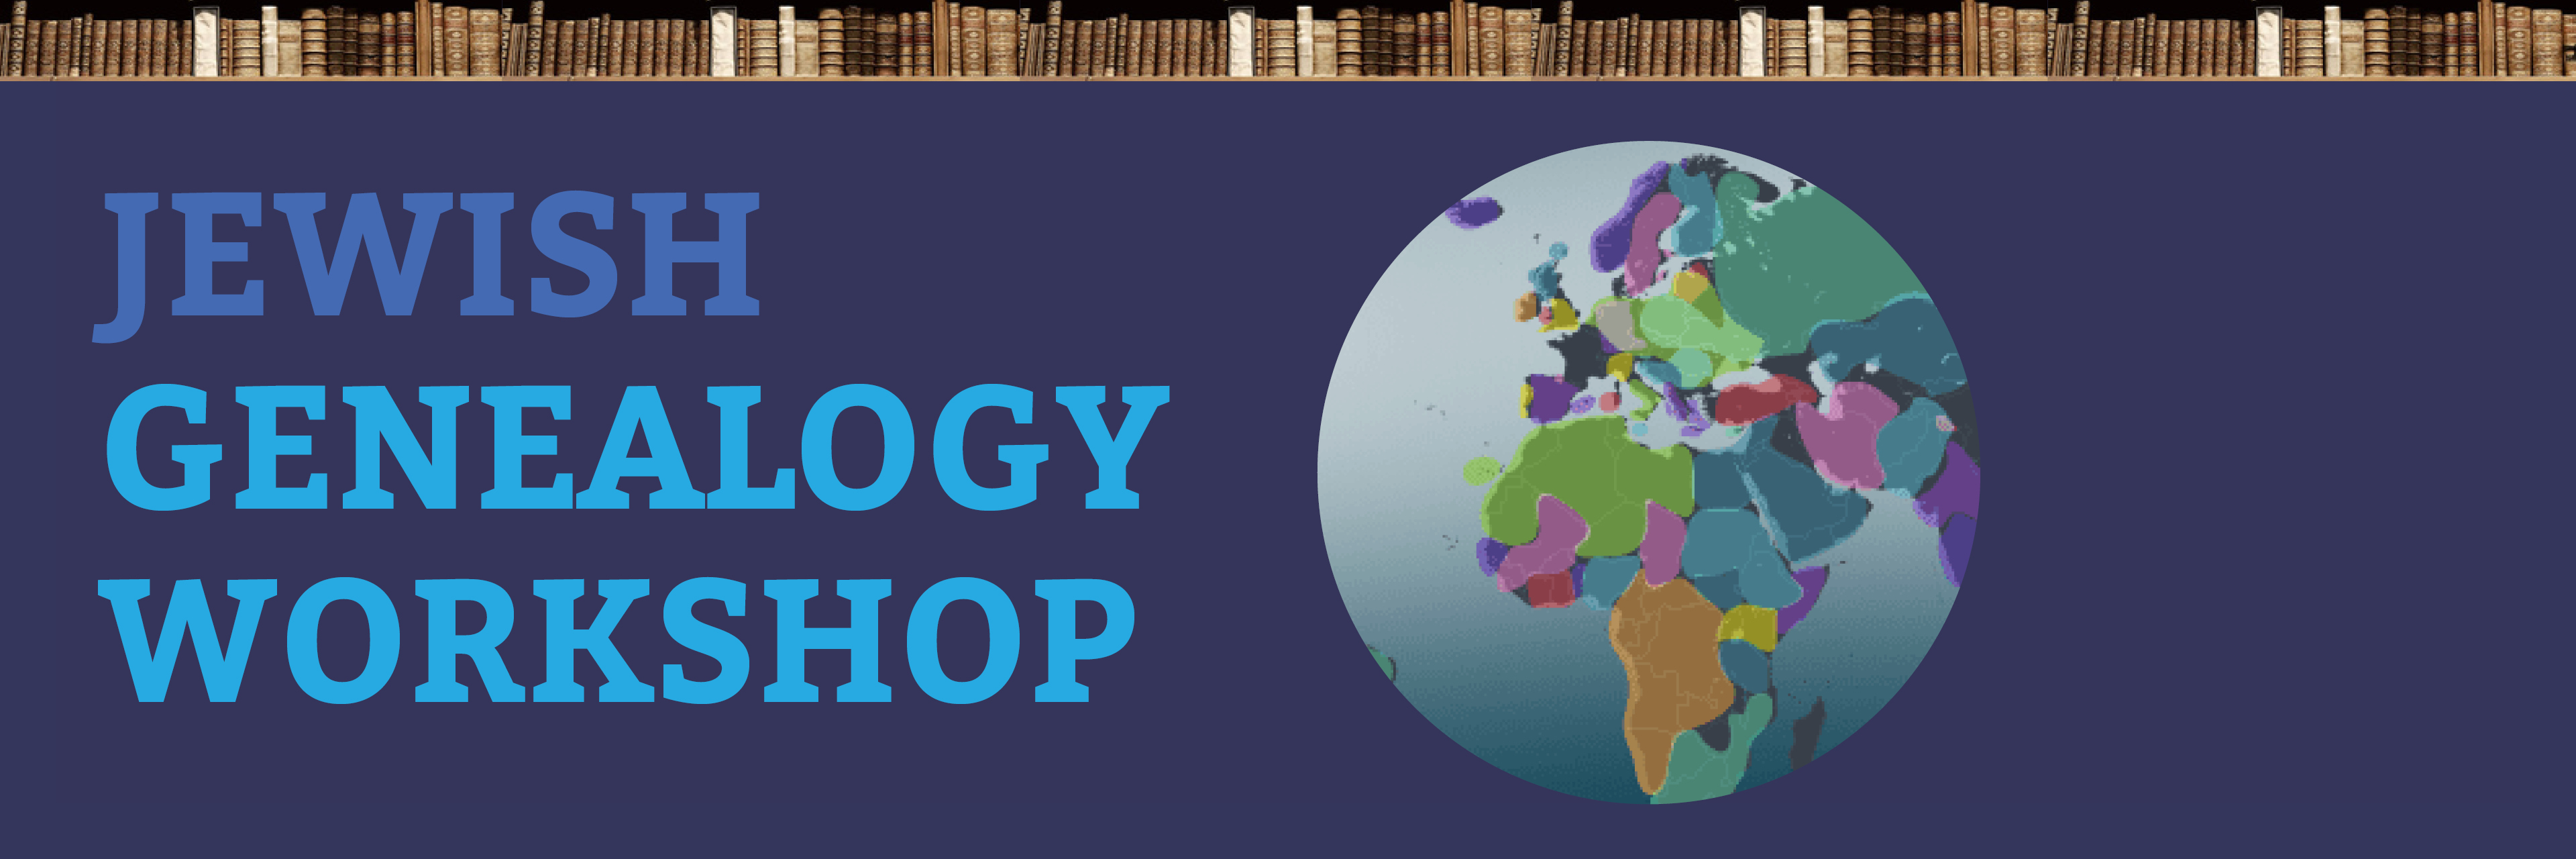 """<a href=""""https://www.congkti.org/event/jewish-genealogy-workshop.html""""                                     target="""""""">                                                                 <span class=""""slider_title"""">                                     Learn methodology to build your family tree.                                </span>                                                                 </a>                                                                                                                                                                                       <span class=""""slider_description"""">2 Thursdays in May</span>                                                                                     <a href=""""https://www.congkti.org/event/jewish-genealogy-workshop.html"""" class=""""slider_link""""                             target="""""""">                             Learn more & register here...                            </a>"""